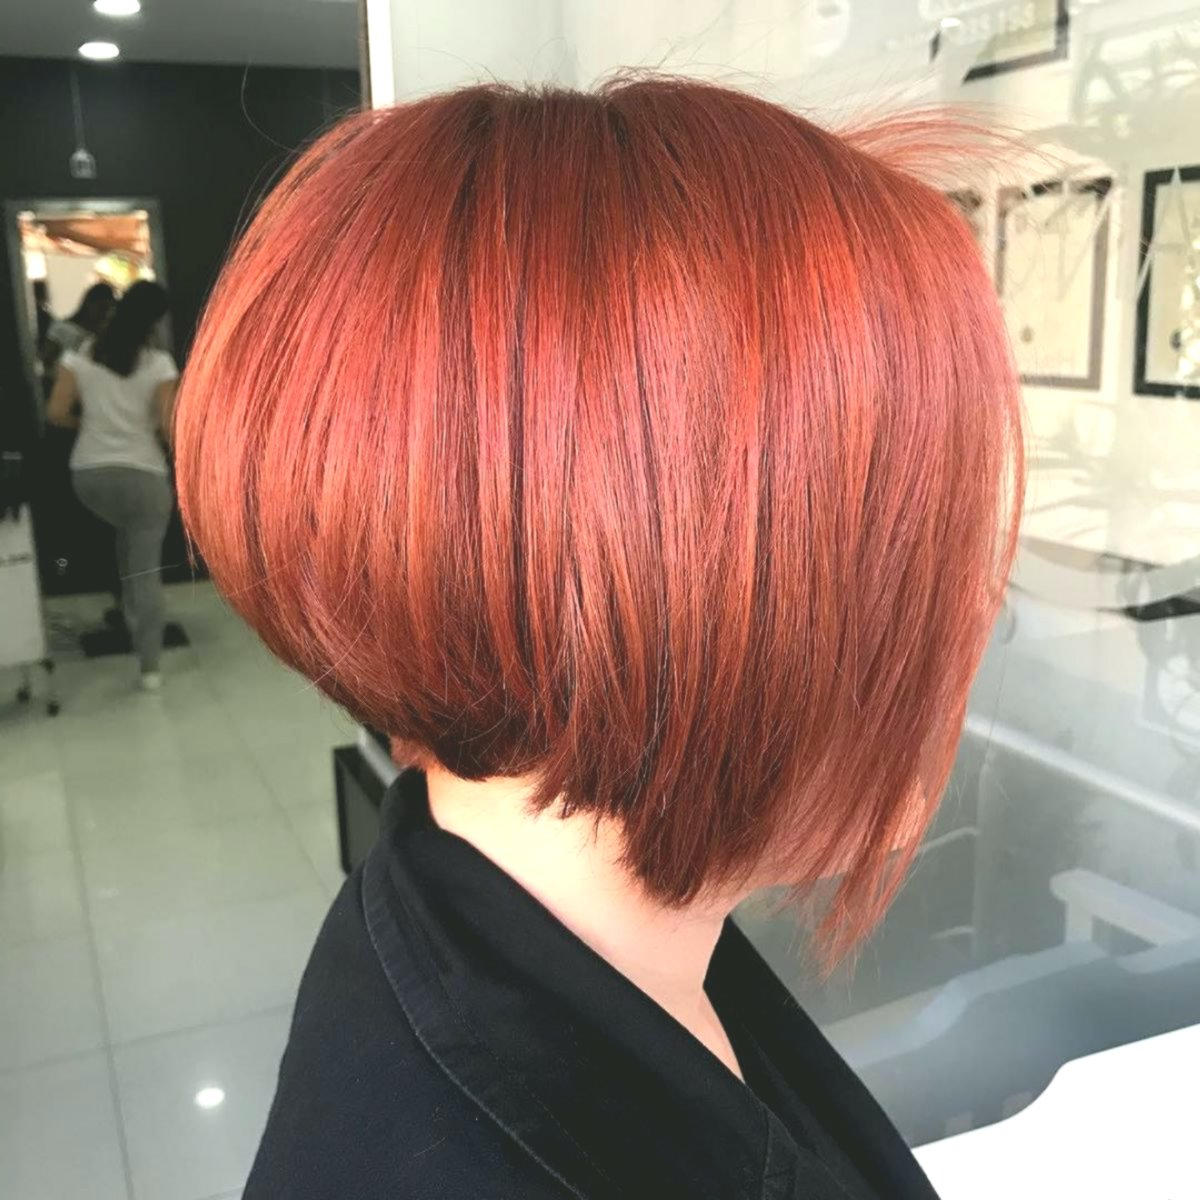 fantastic hairstyles for 50 year old women model-sensational hairstyles for 50 year old women pattern